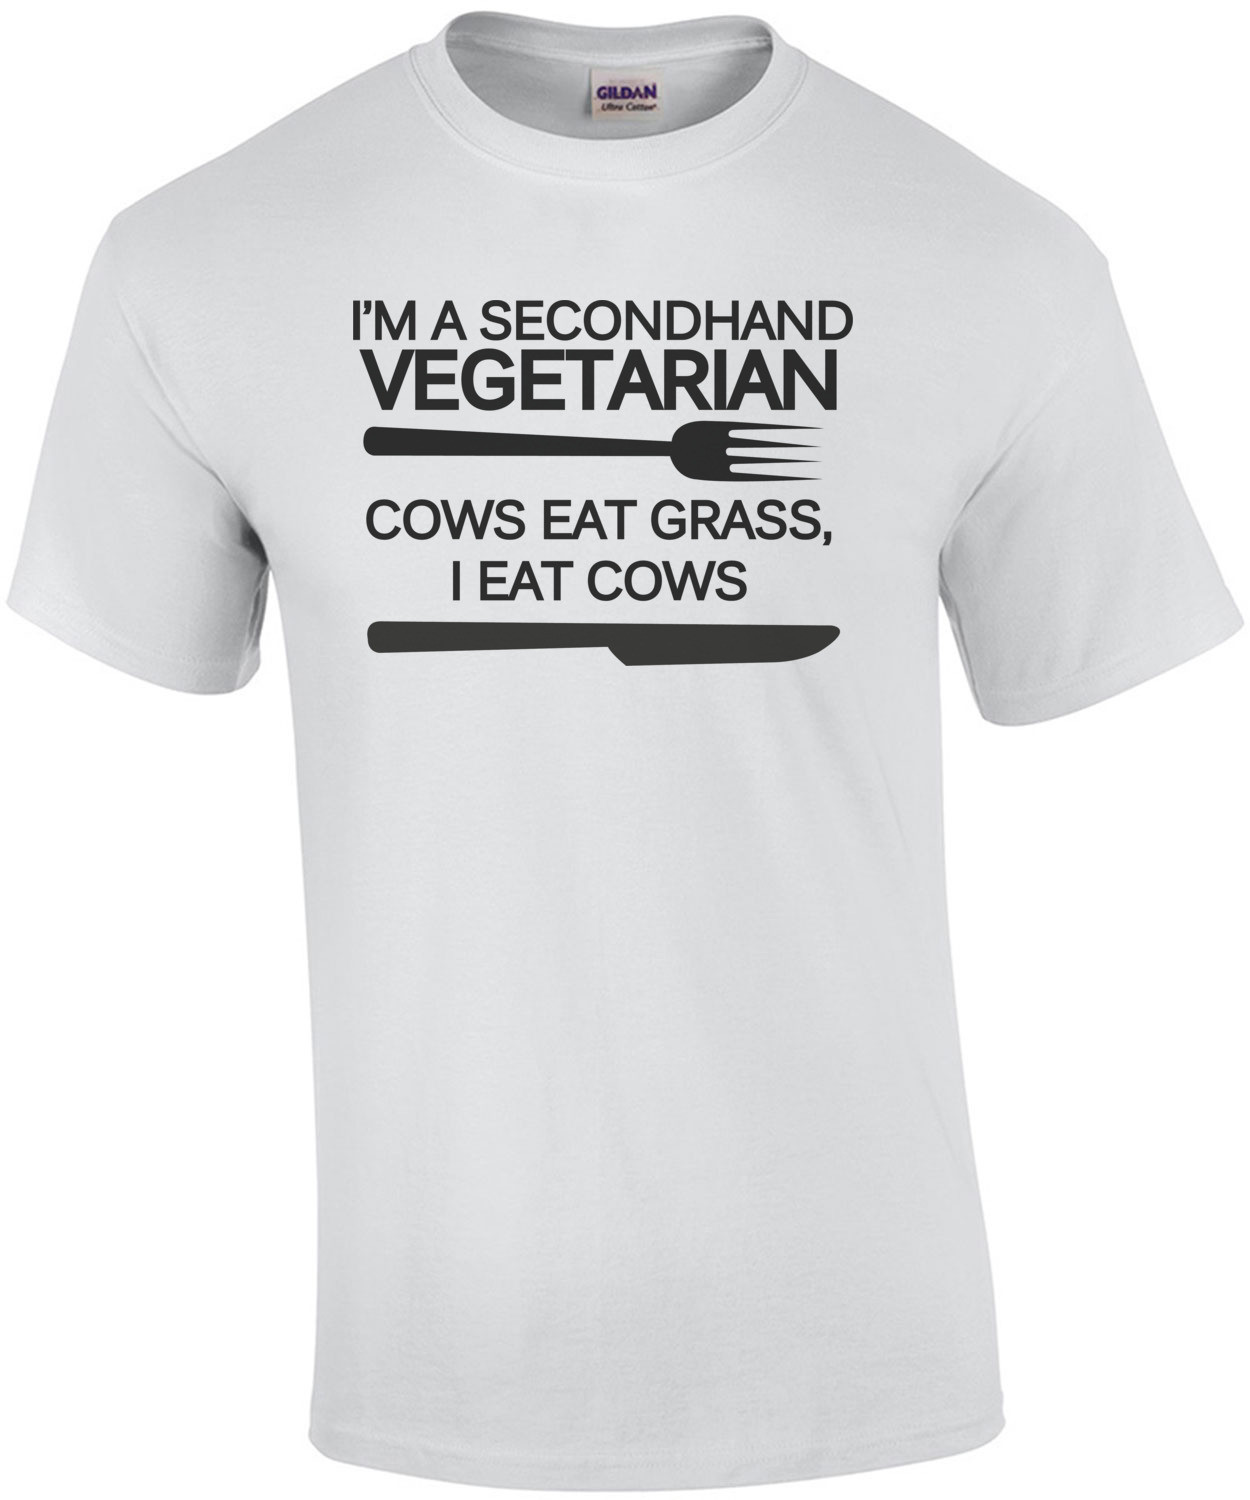 I'm a secondhand vegetarian. Cows eat grass, I eat cows. Funny T-Shirt